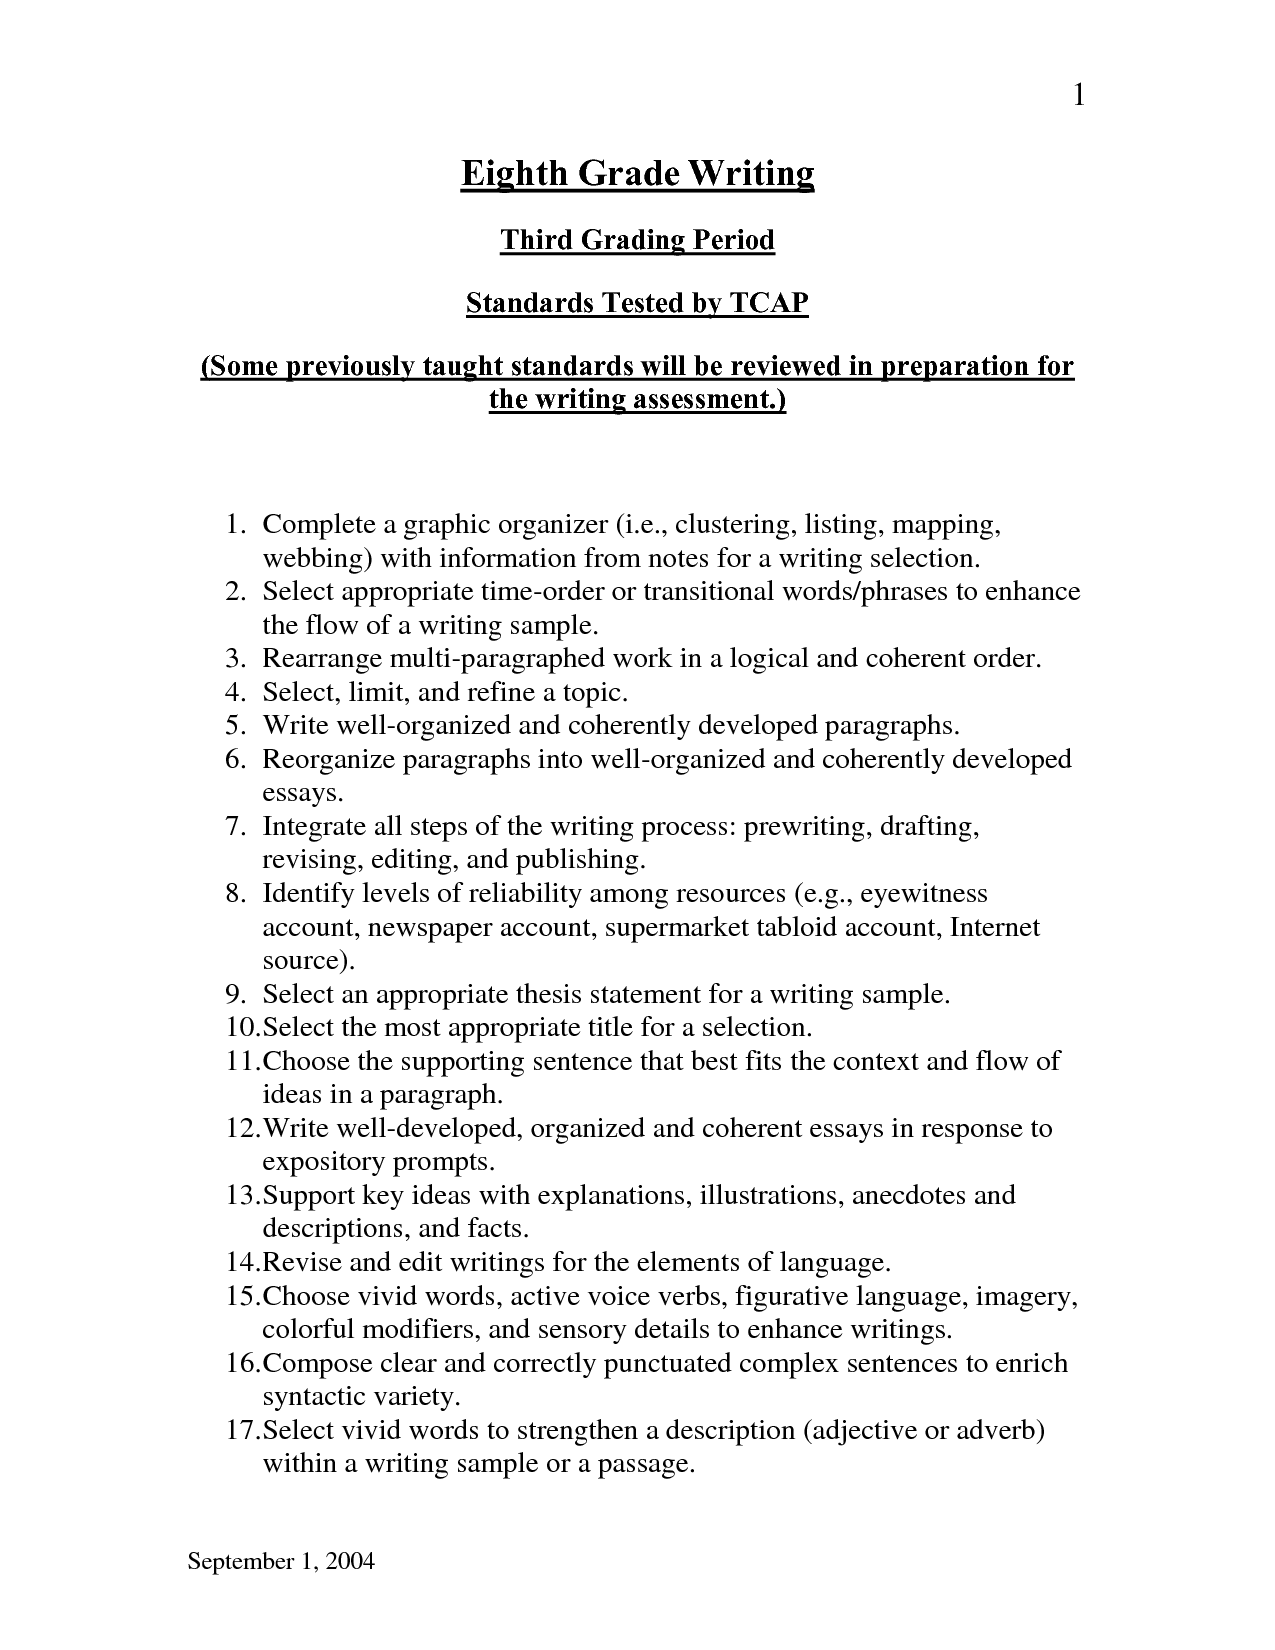 012 Essay Example What Is An Expository Writing Prompts For High School 1088622 Magnificent Gcu Middle Powerpoint Full